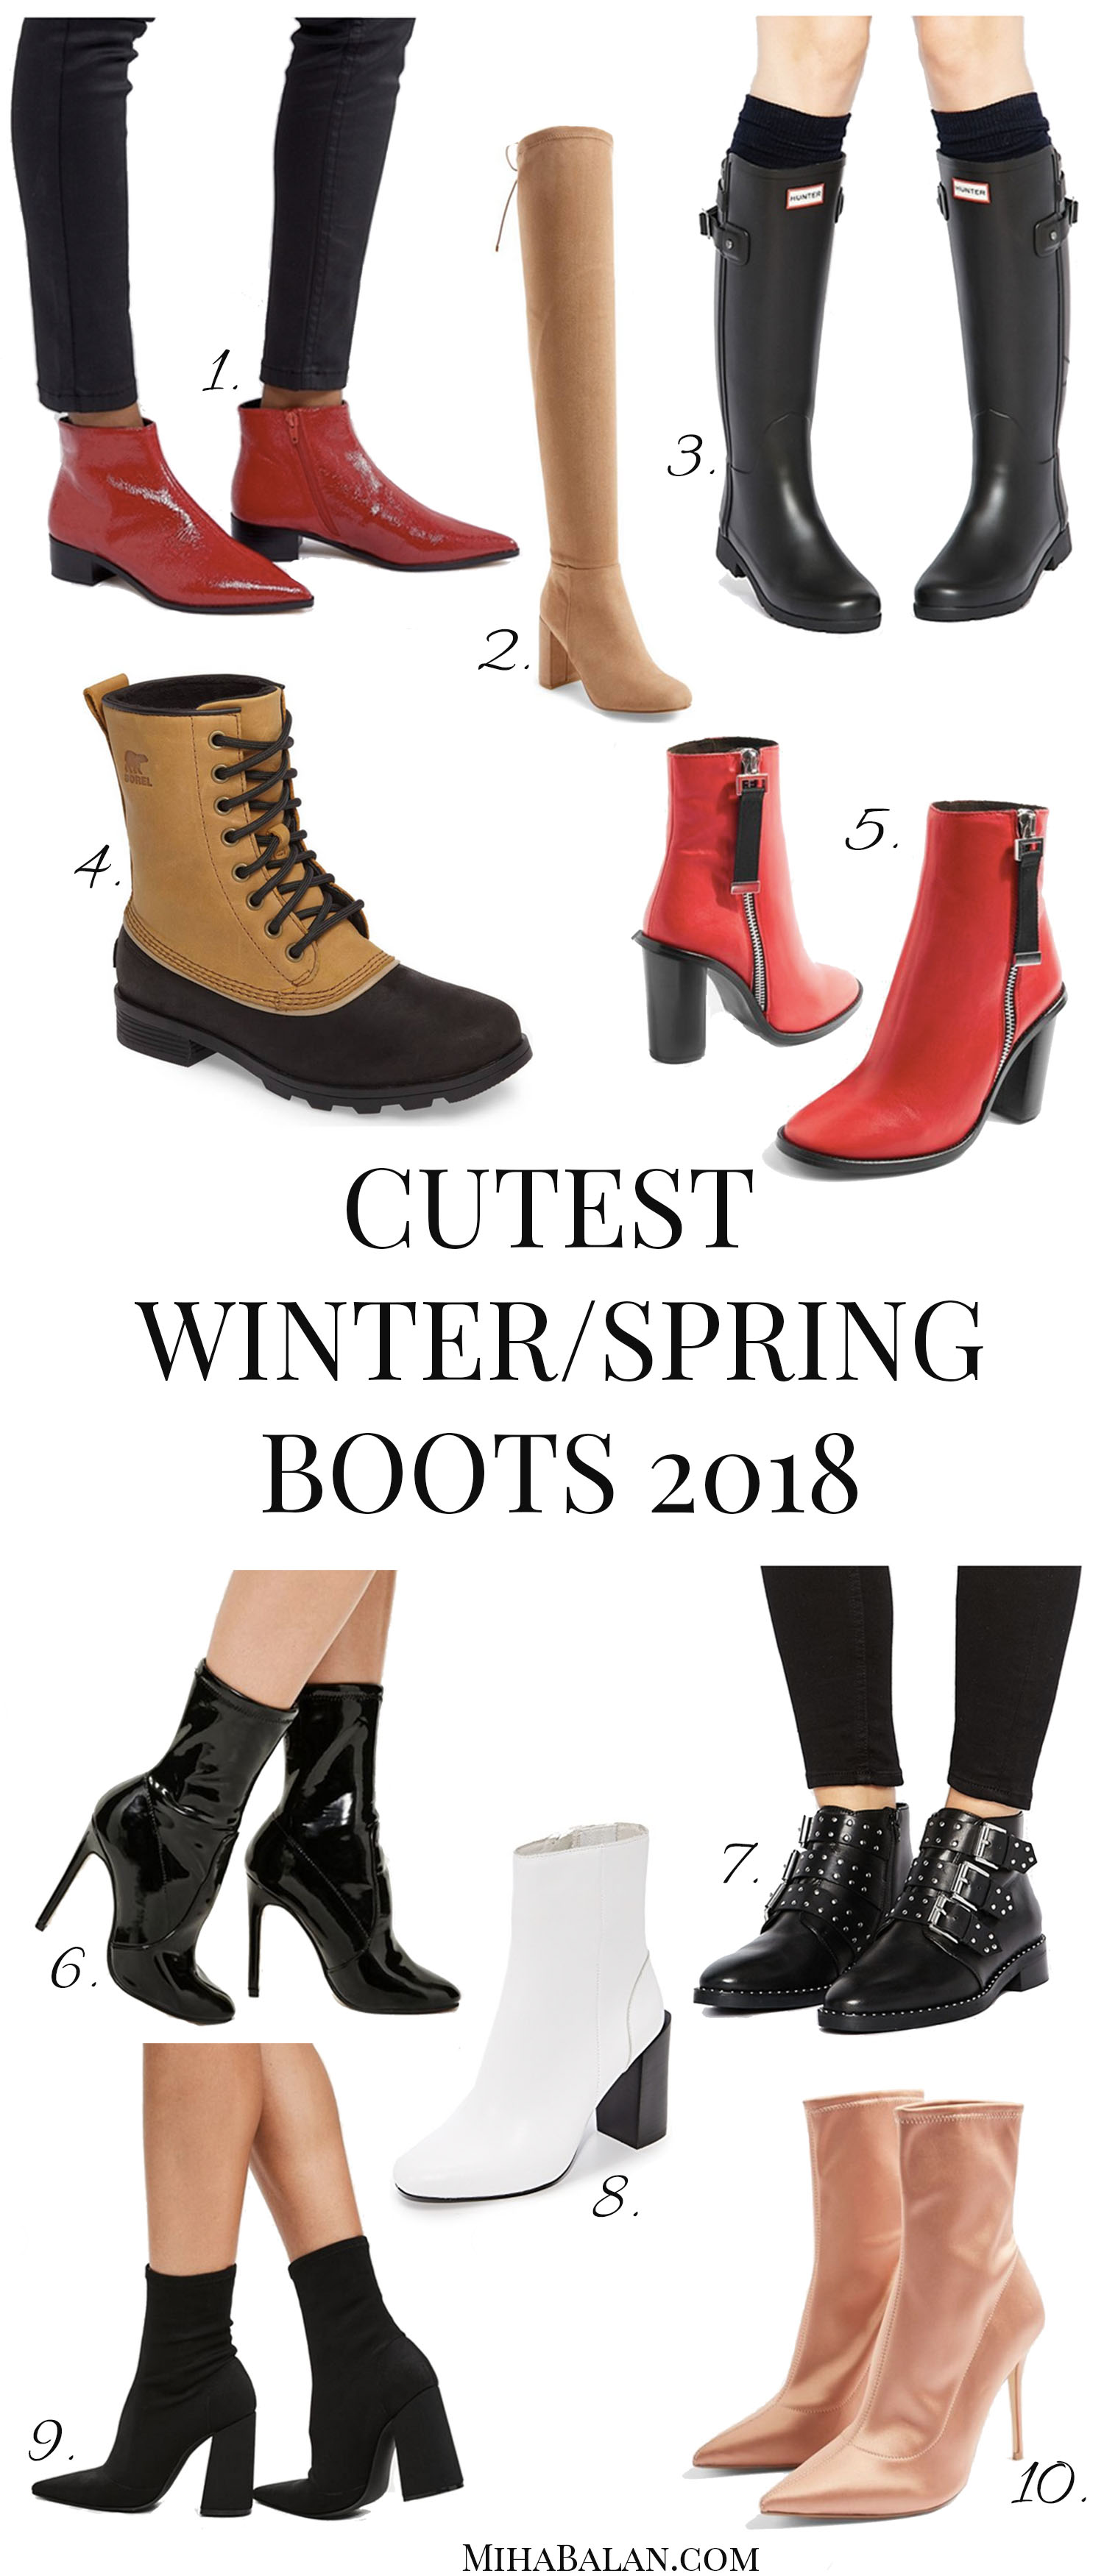 Women boots winter spring ankle boots, over the knee boots, sock boots, hunter boots, waterproof boots, high heel boots, red boots, women shoes 2018